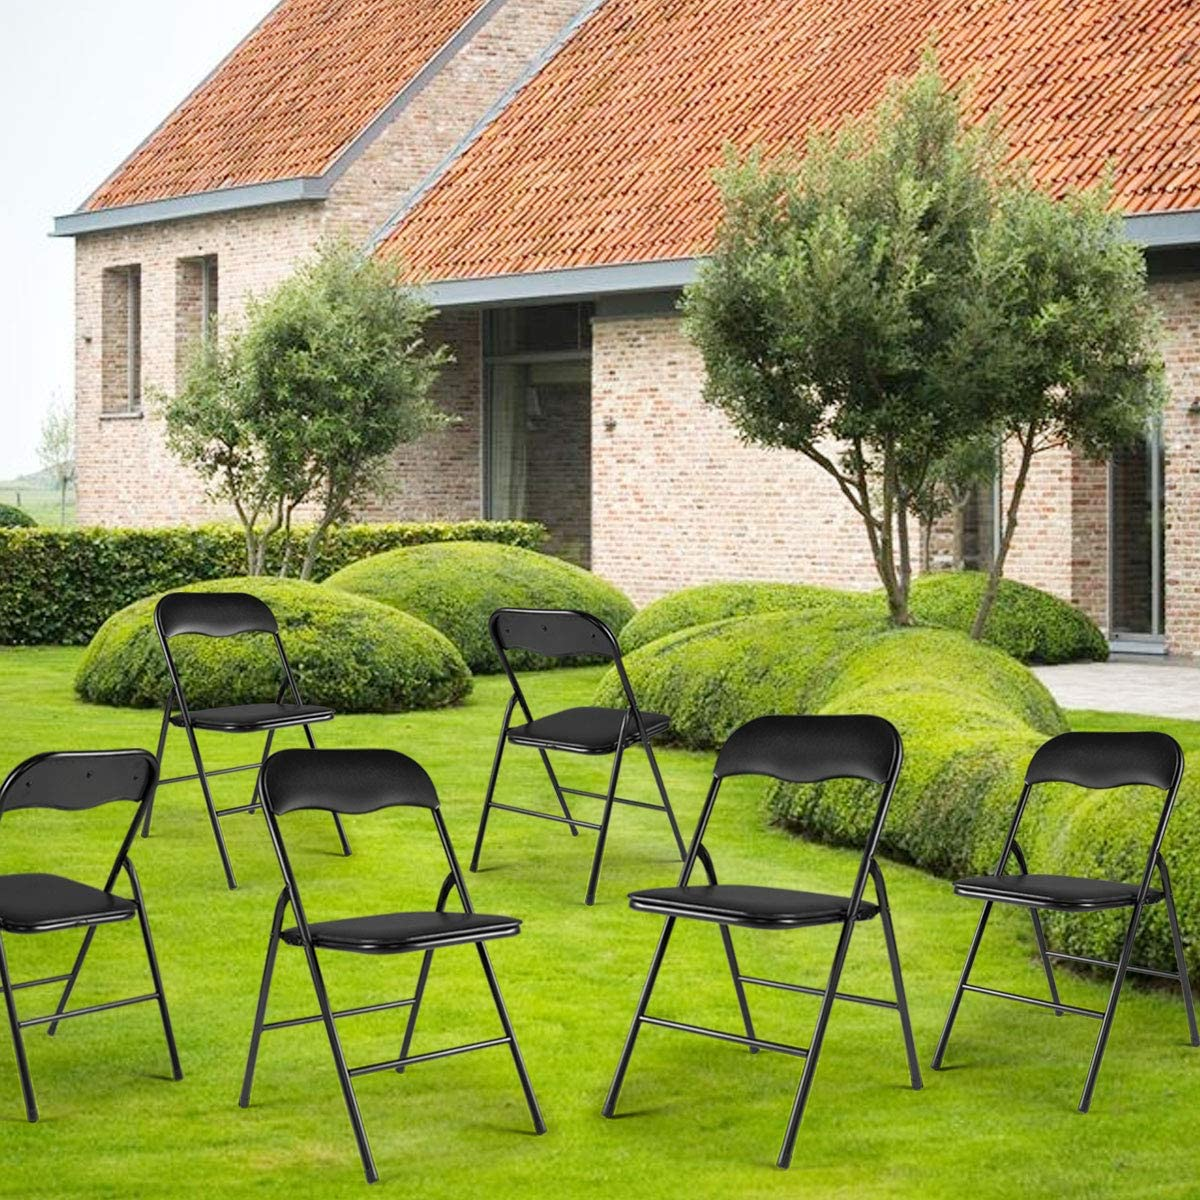 JAXPETY 6PCS Commercial Wedding Quality Stack-able Plastic Folding Chairs Black W Soft Cushion